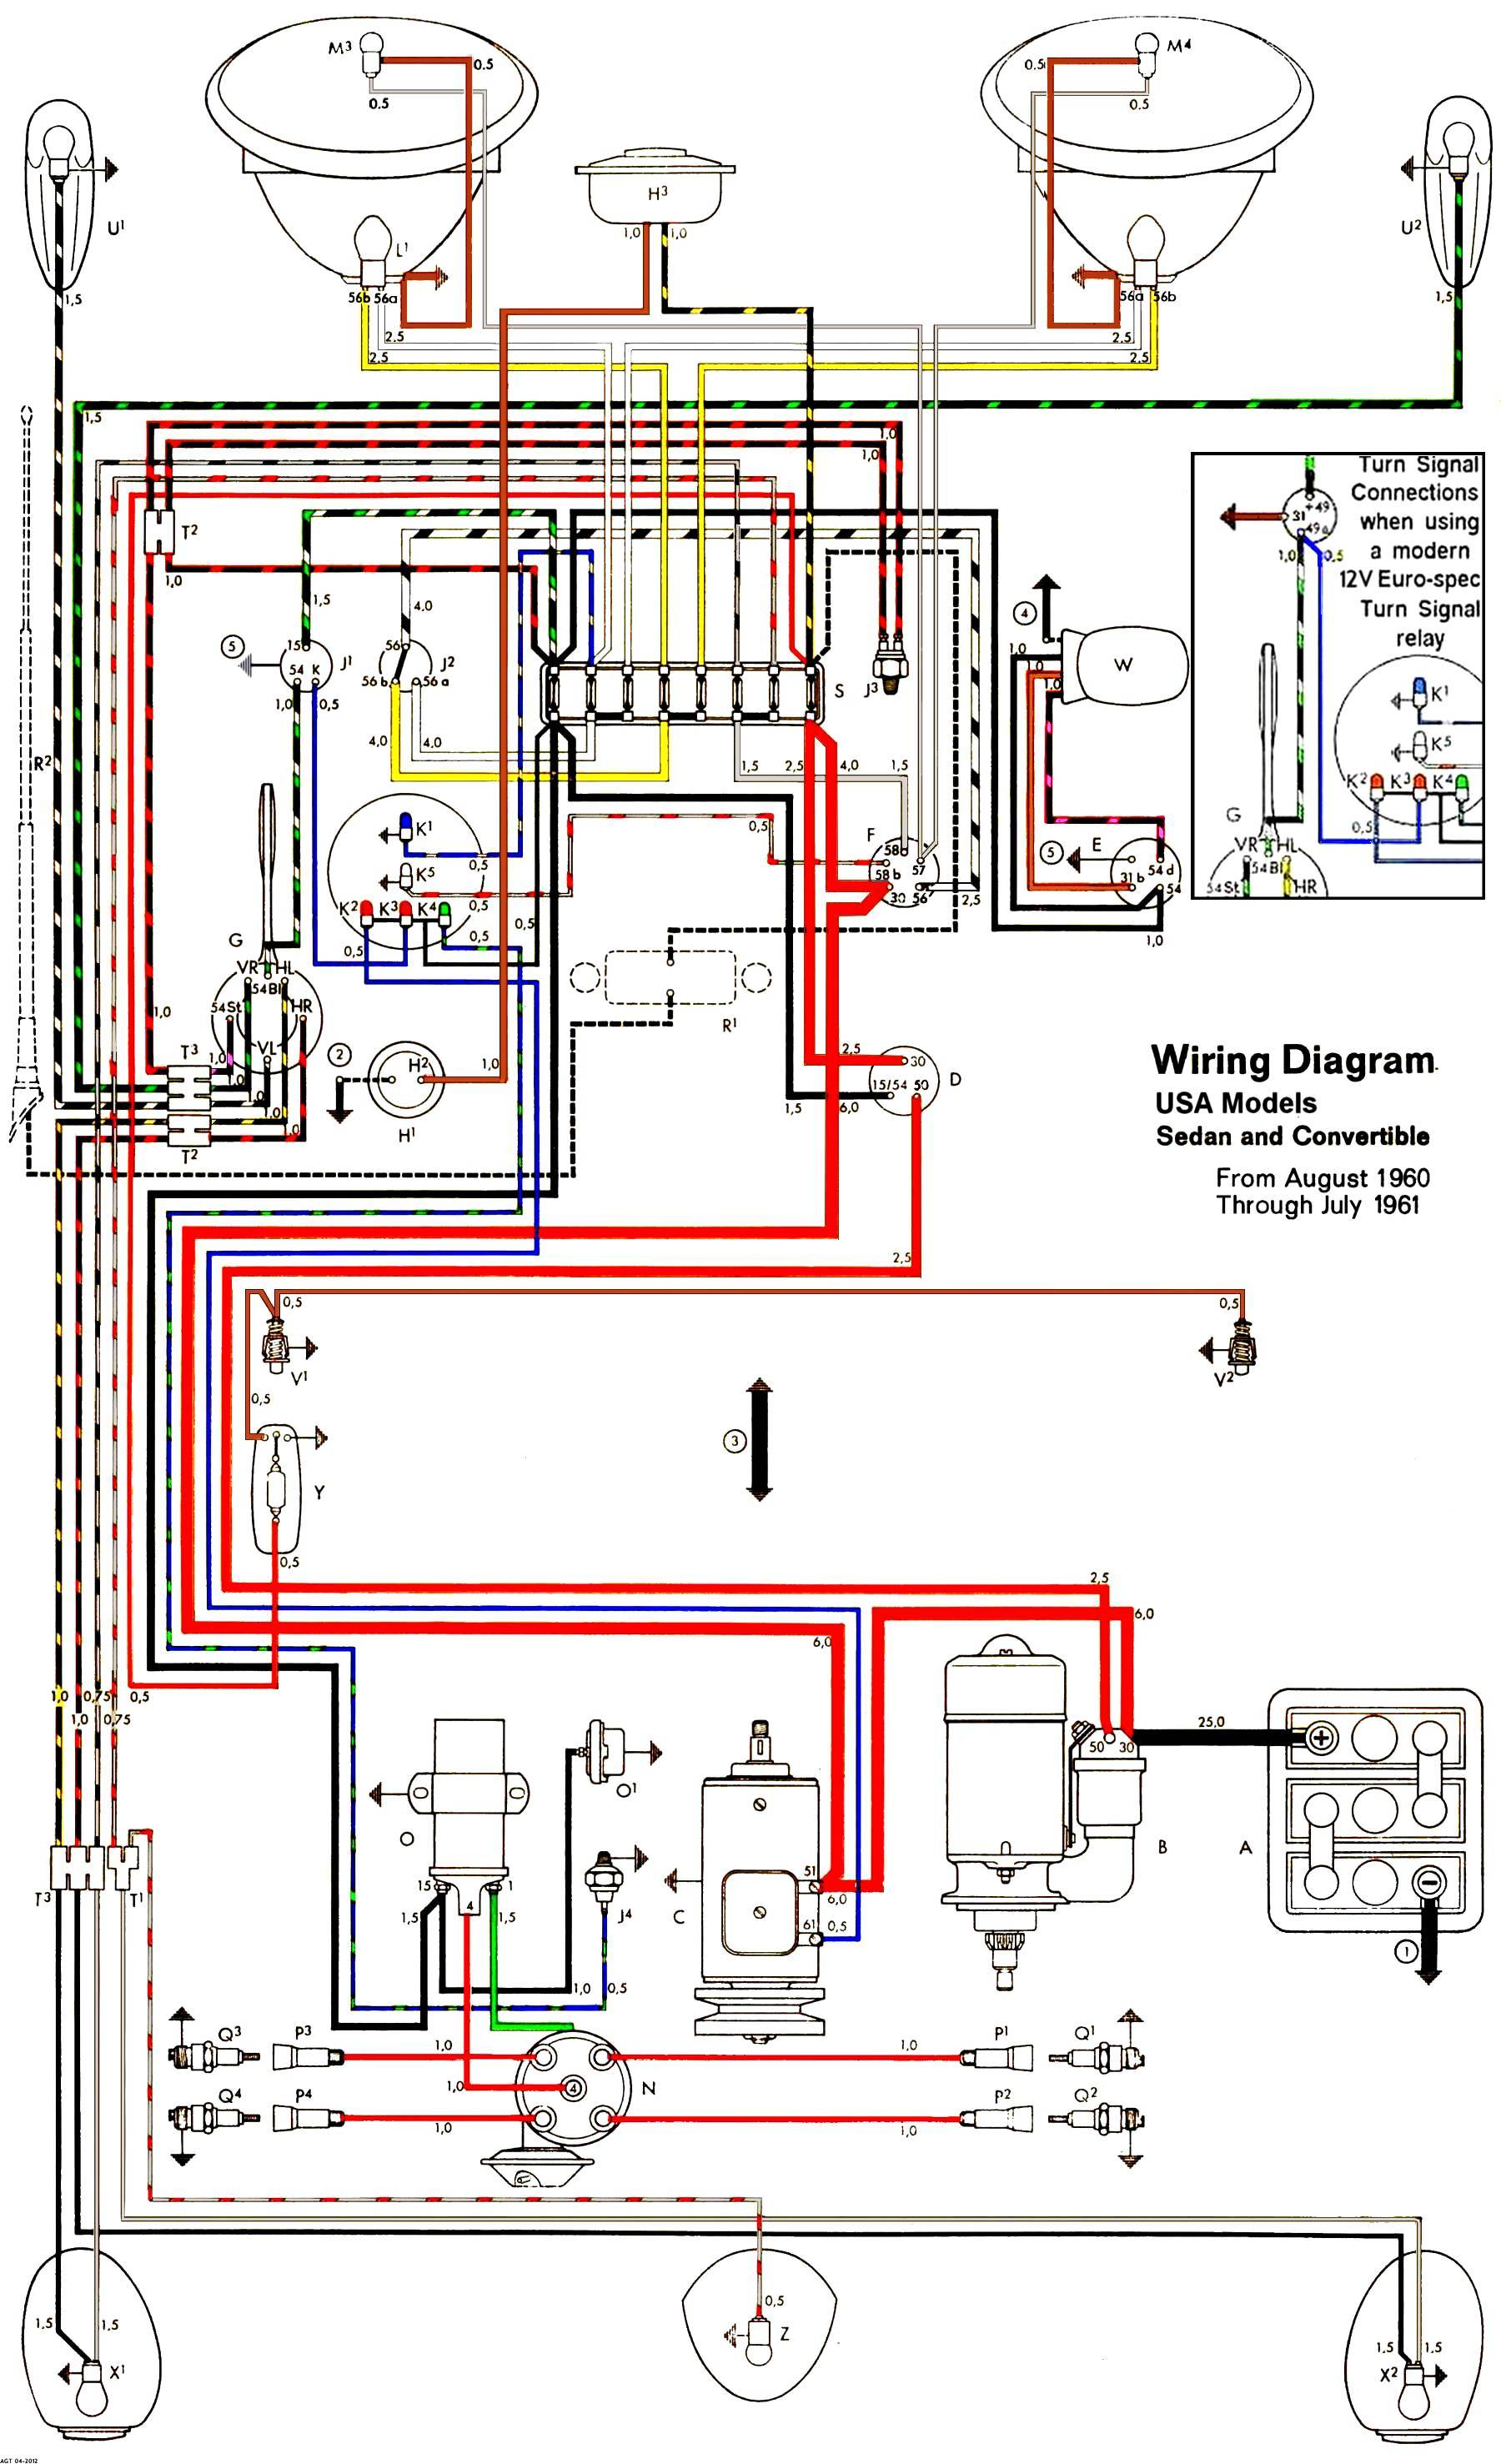 thesamba com type 1 wiring diagrams rh thesamba com vw beetle wiring diagram 1970 vw beetle wiring diagram 1971